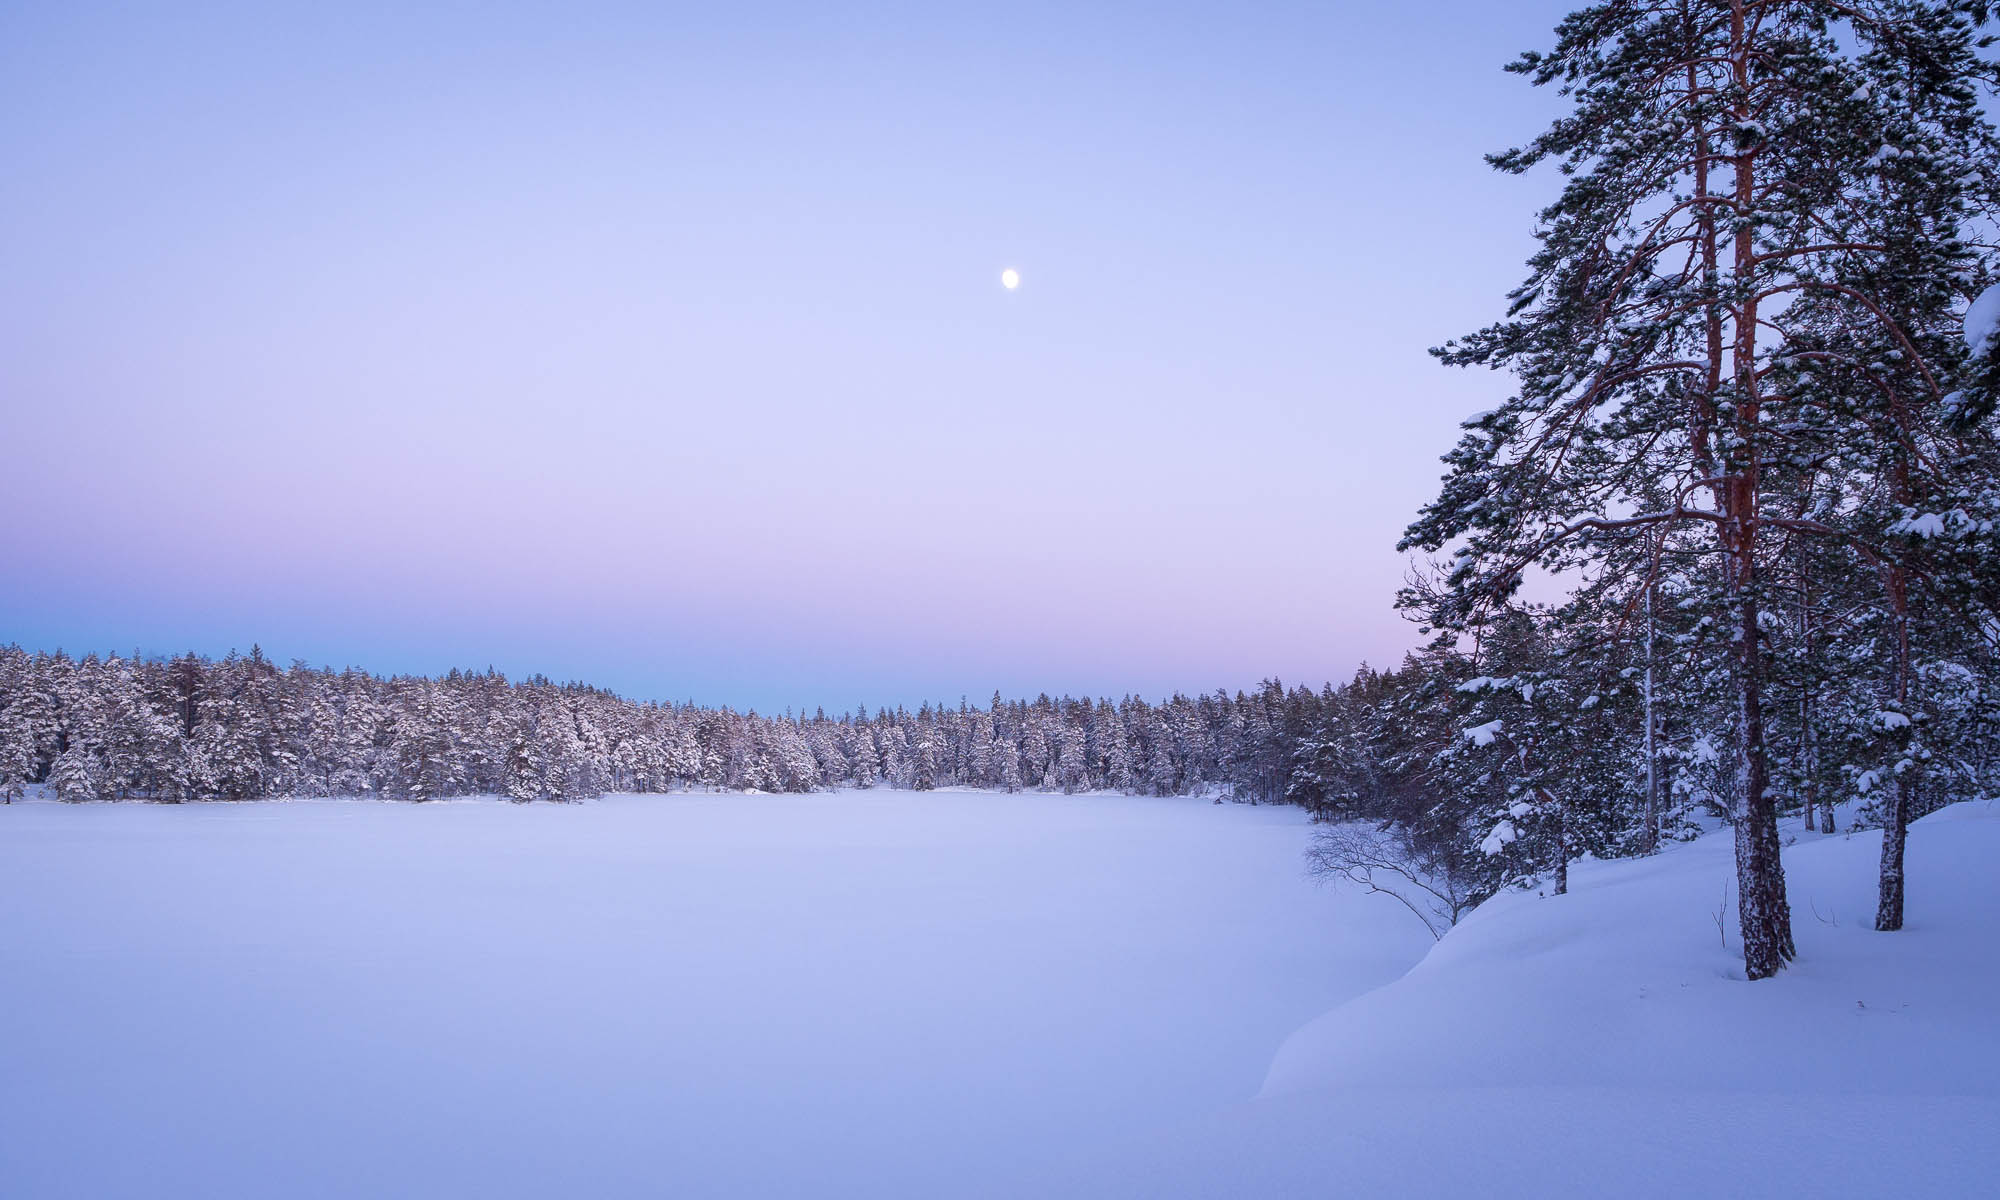 Nuuksio National Park in winter. Whole landscape covered in snow. Finnish nature near Helsinki, Finland.